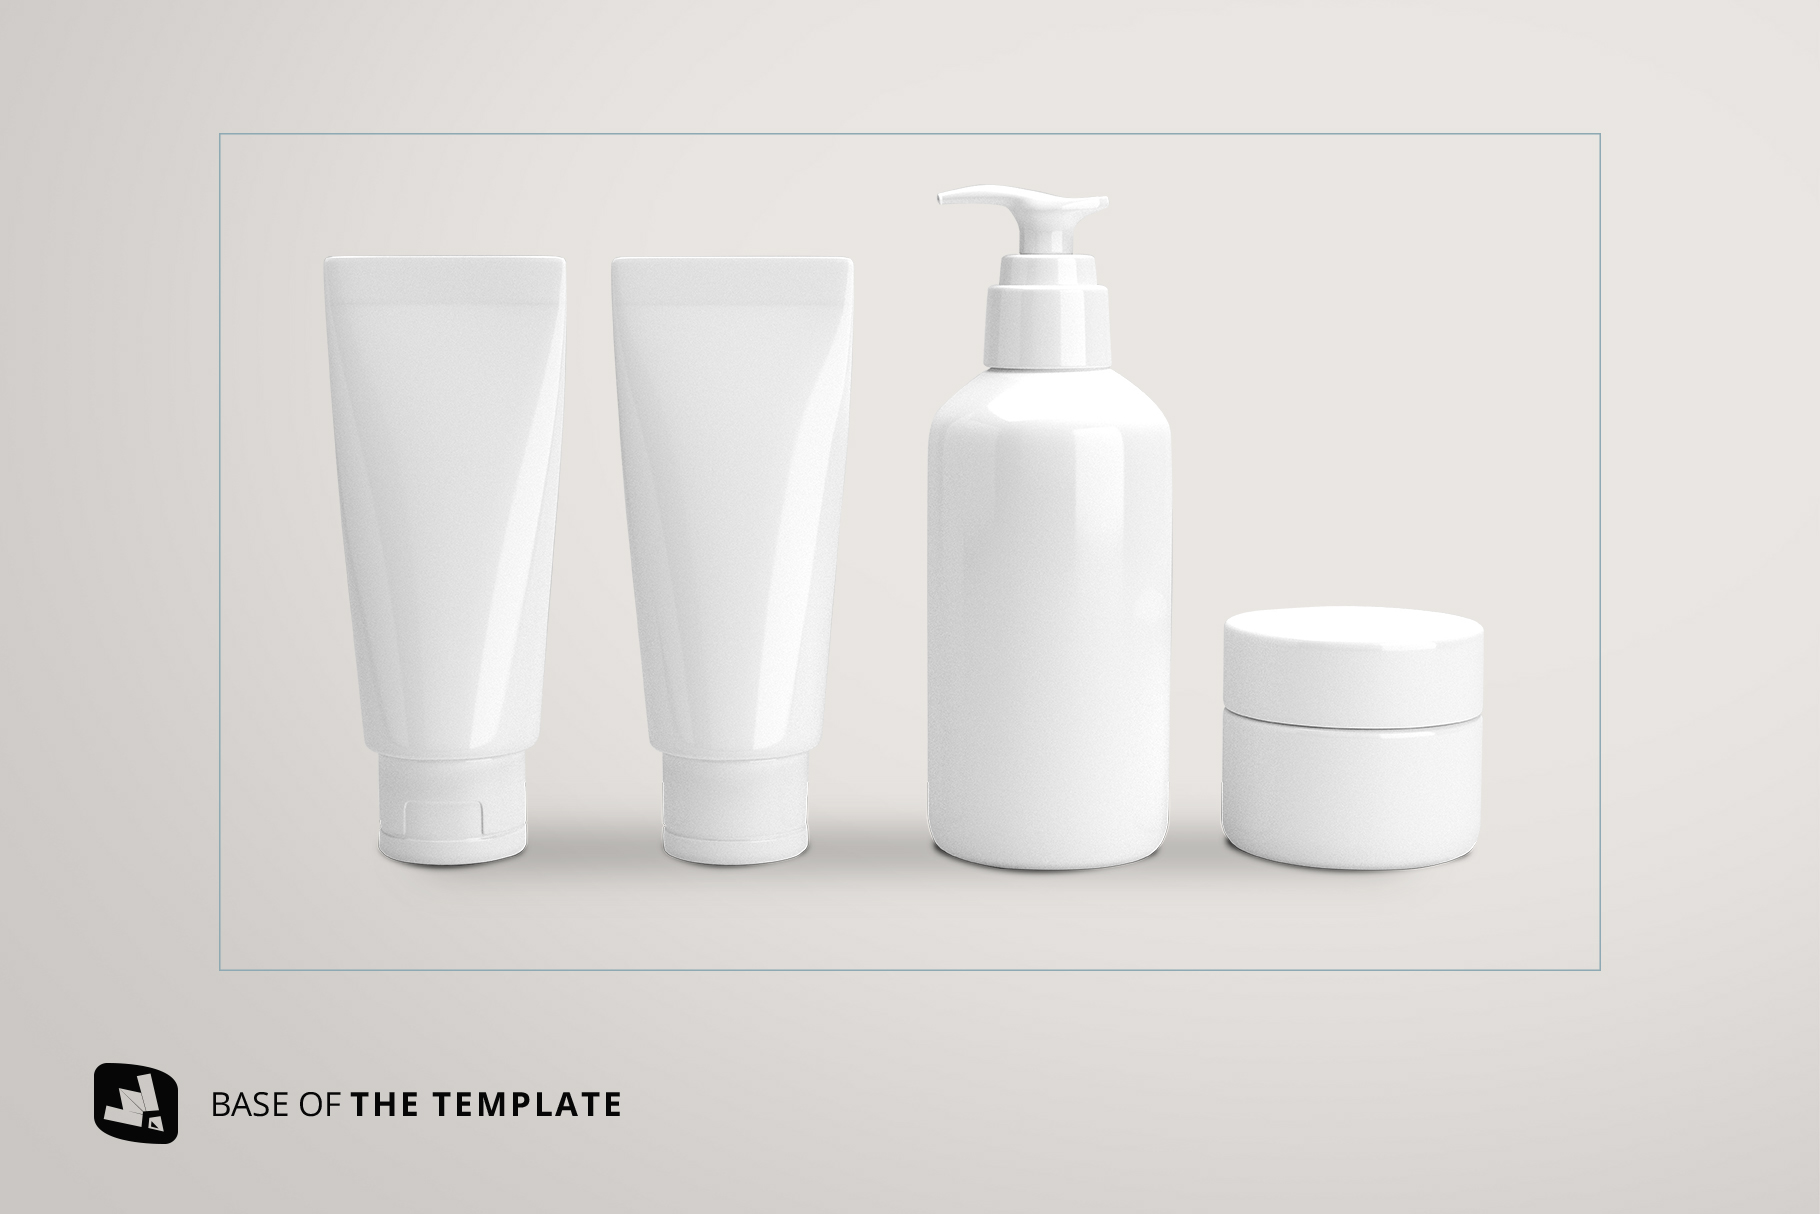 base image of the beauty product packaging set mockup